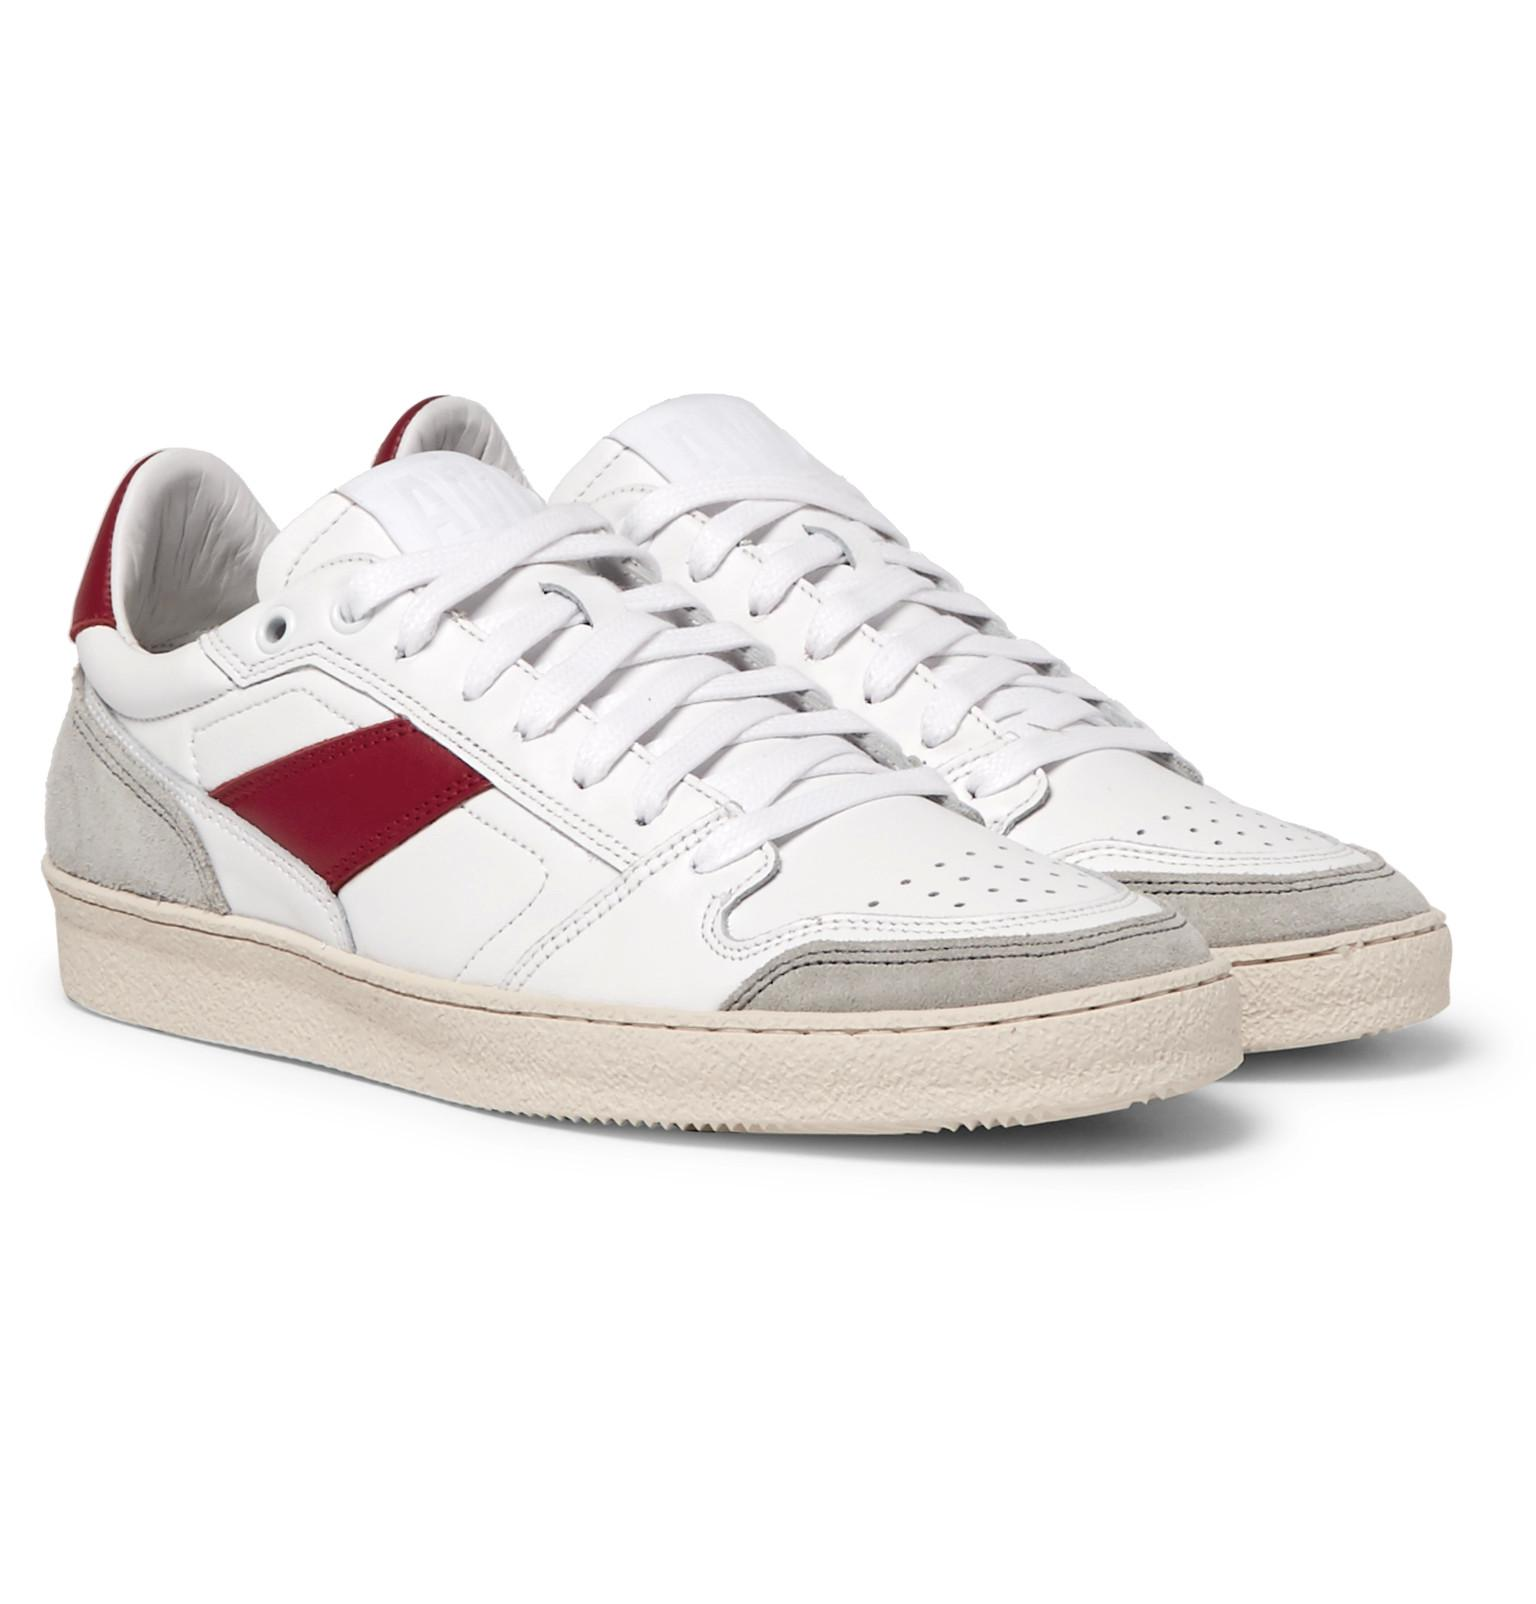 Leather And Suede Sneakers Ami lLKj6lV